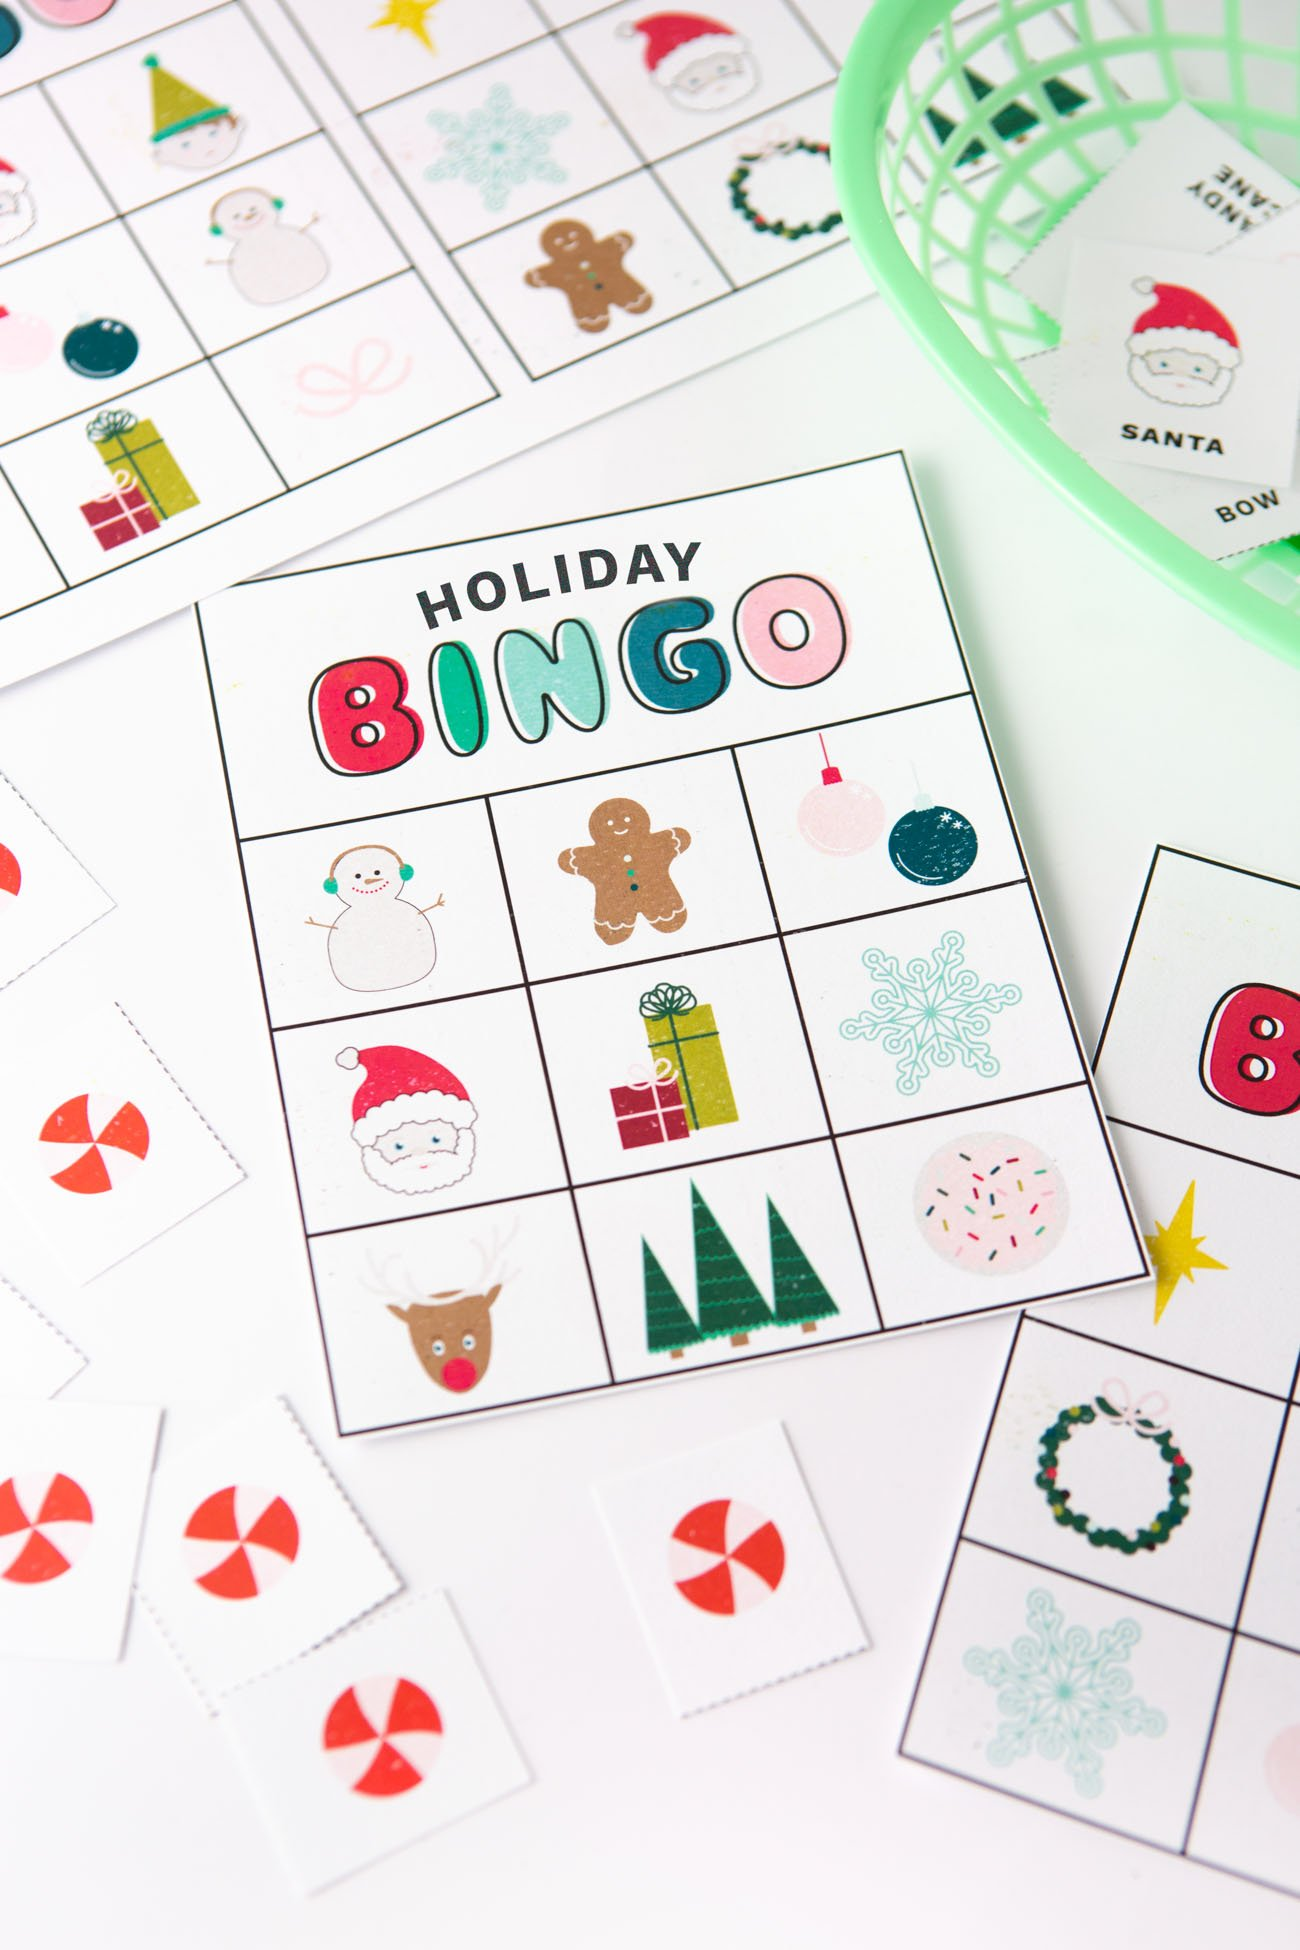 graphic about Holiday Bingo Printable identify Absolutely free Printable Xmas Bingo Playing cards - Style and design Try to eat Repeat